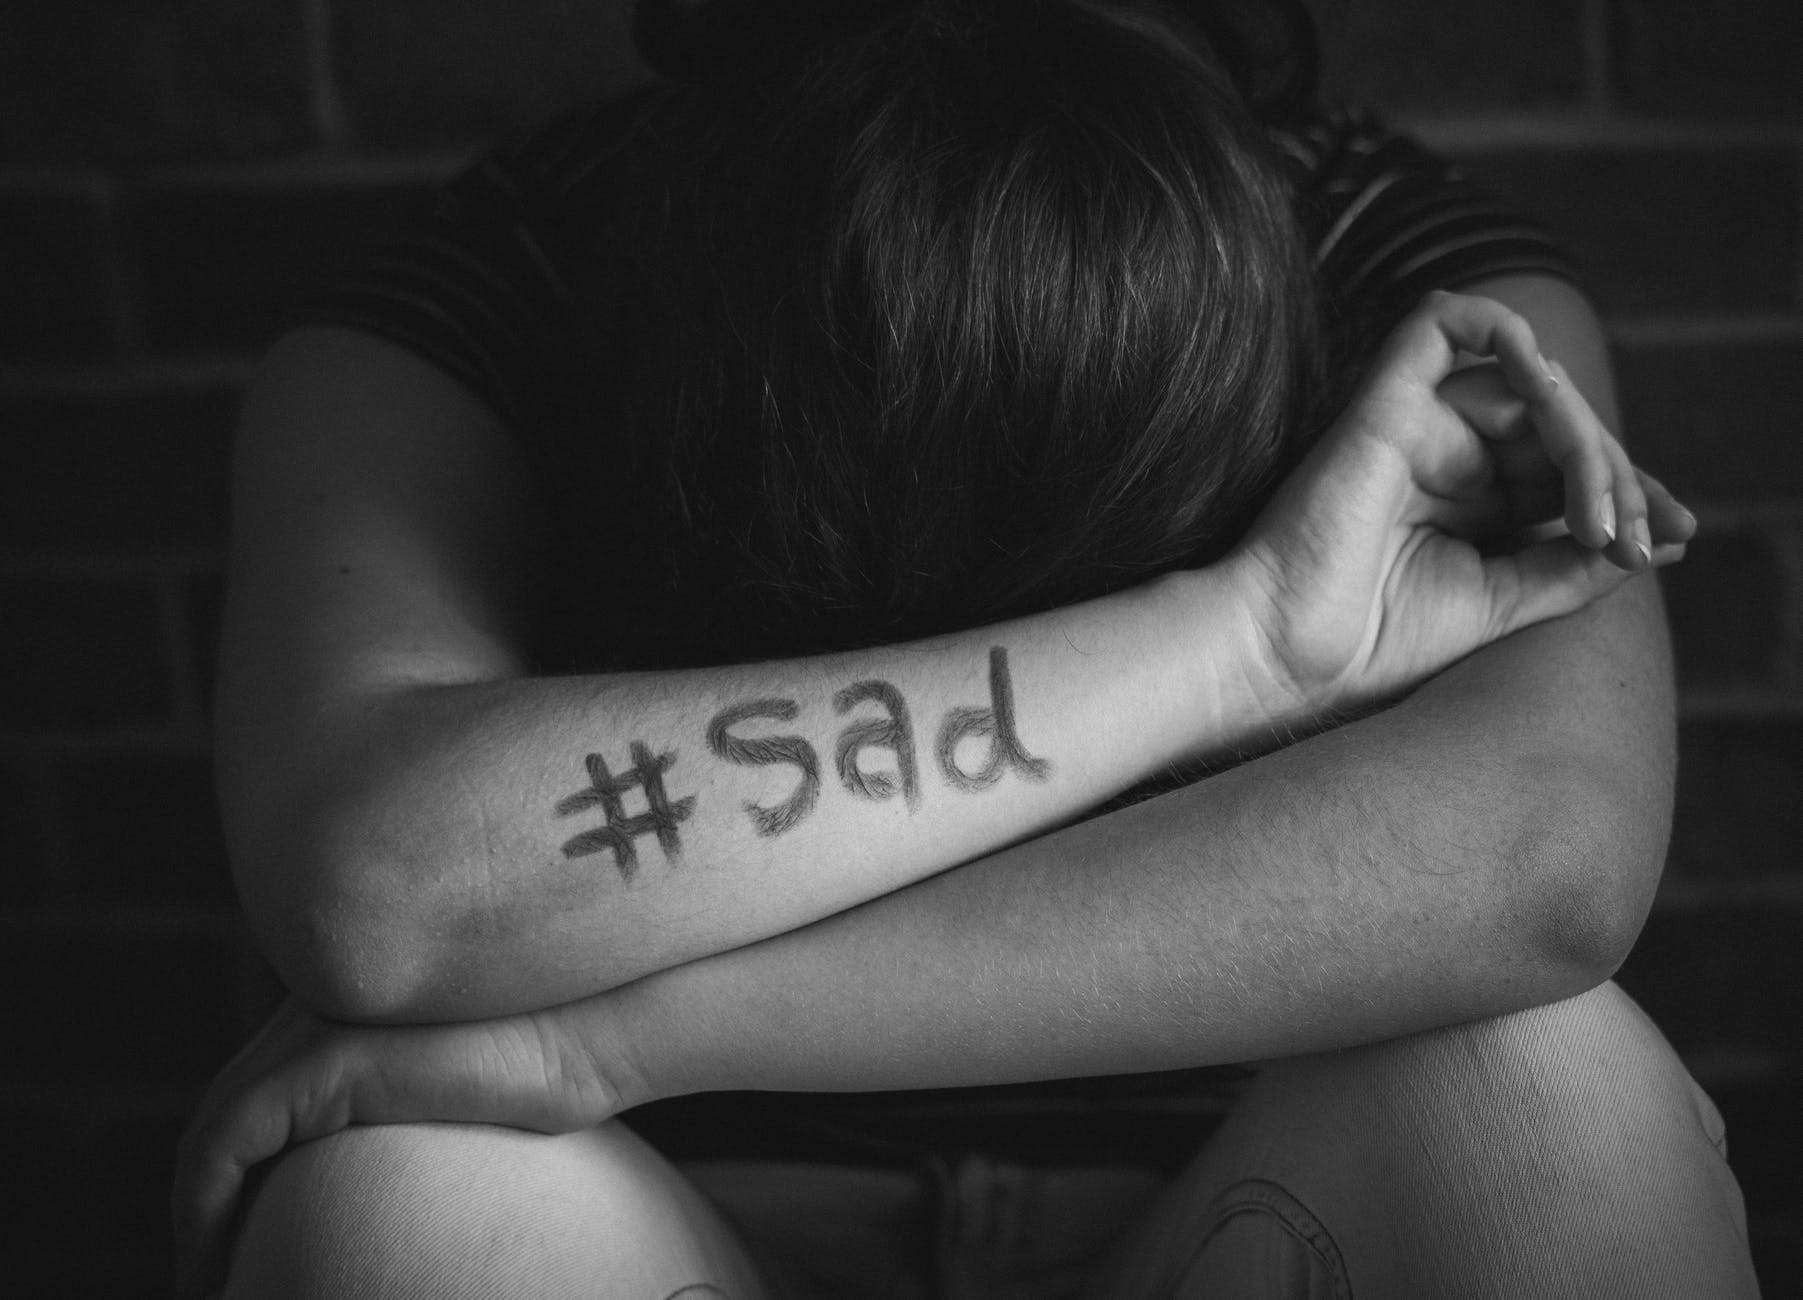 person leans on arms with sad text